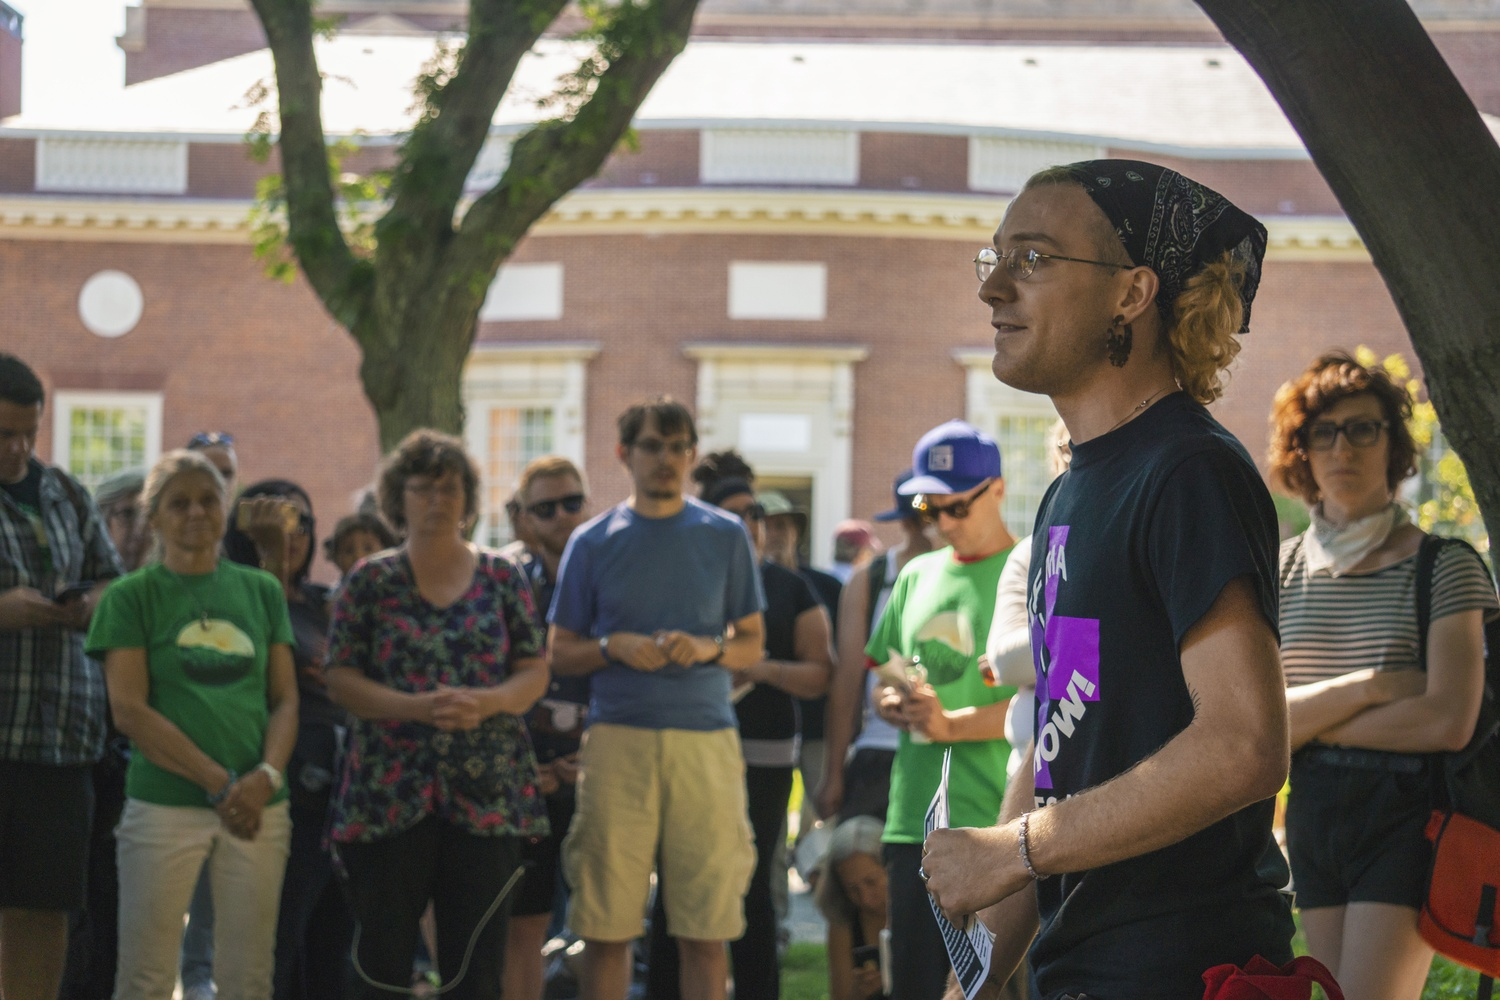 A crowd gathers in front of Lamont Library on Friday afternoon to protest the Arthur M. Sackler Museum.